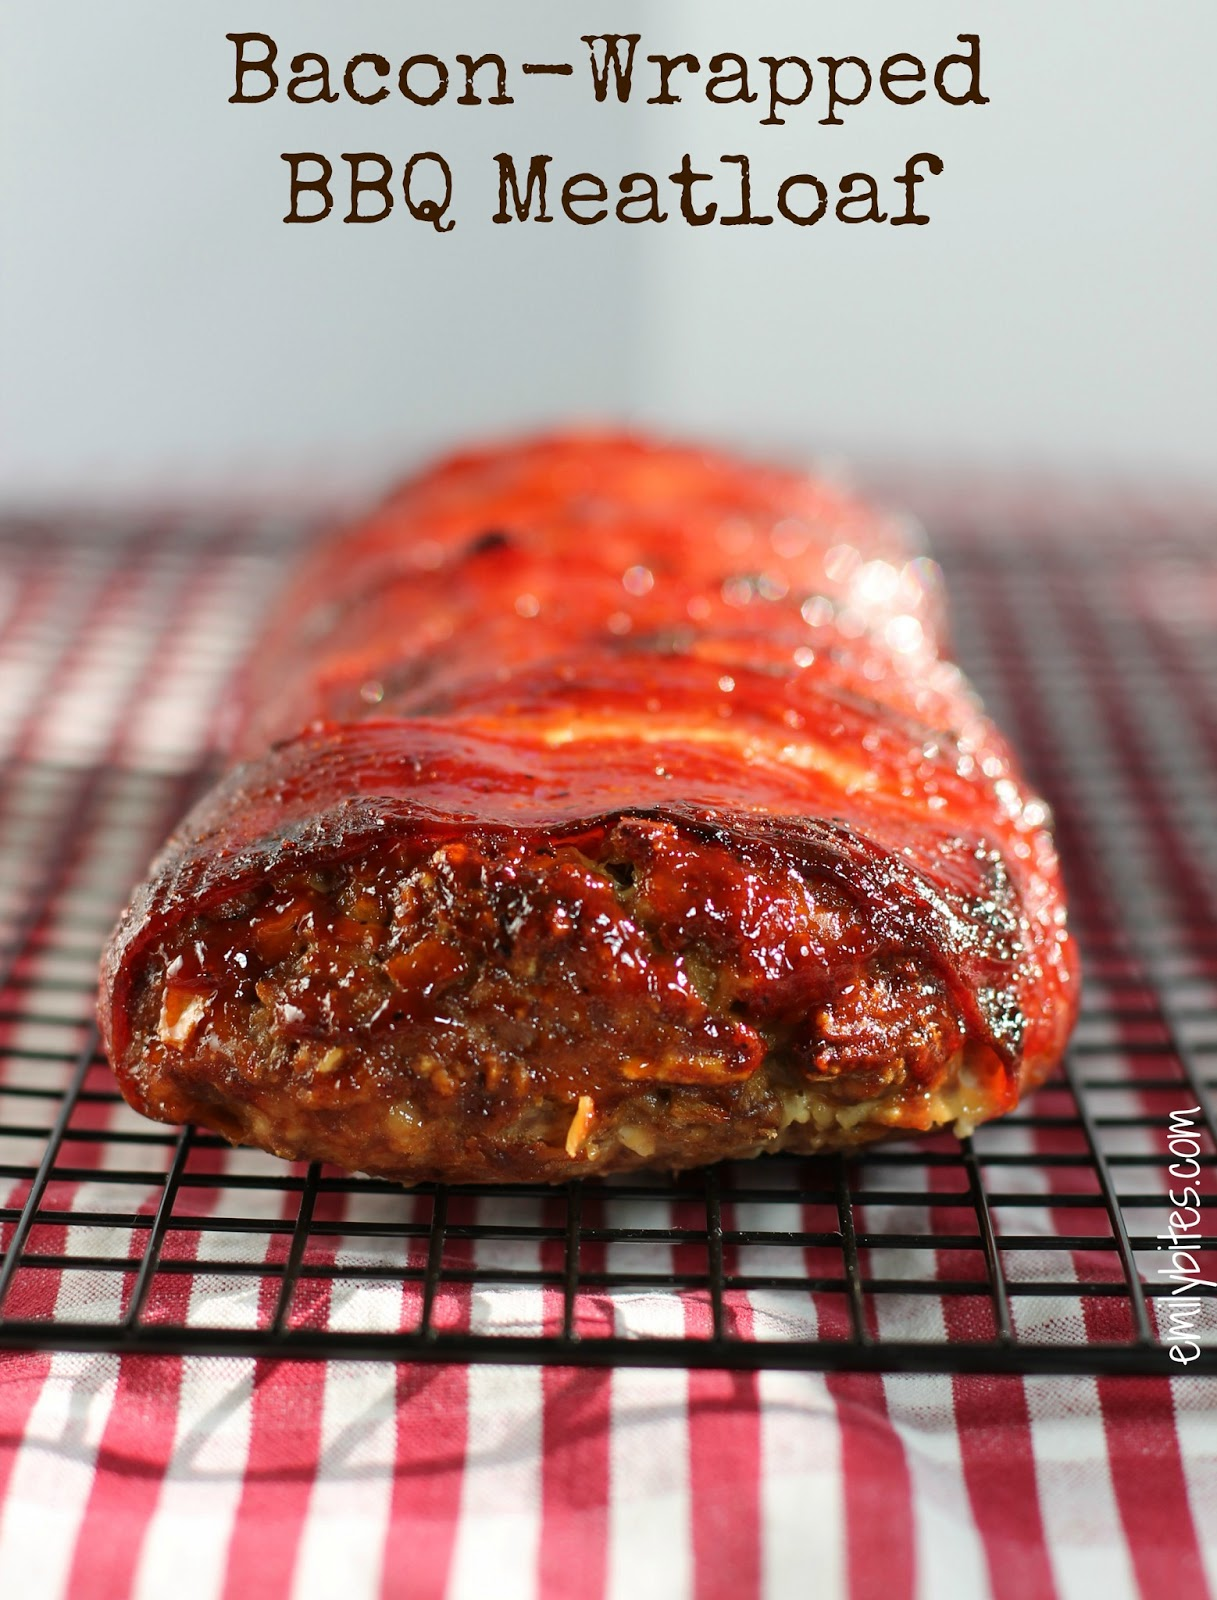 Bacon-Wrapped BBQ Meatloaf | Pinnutty.com